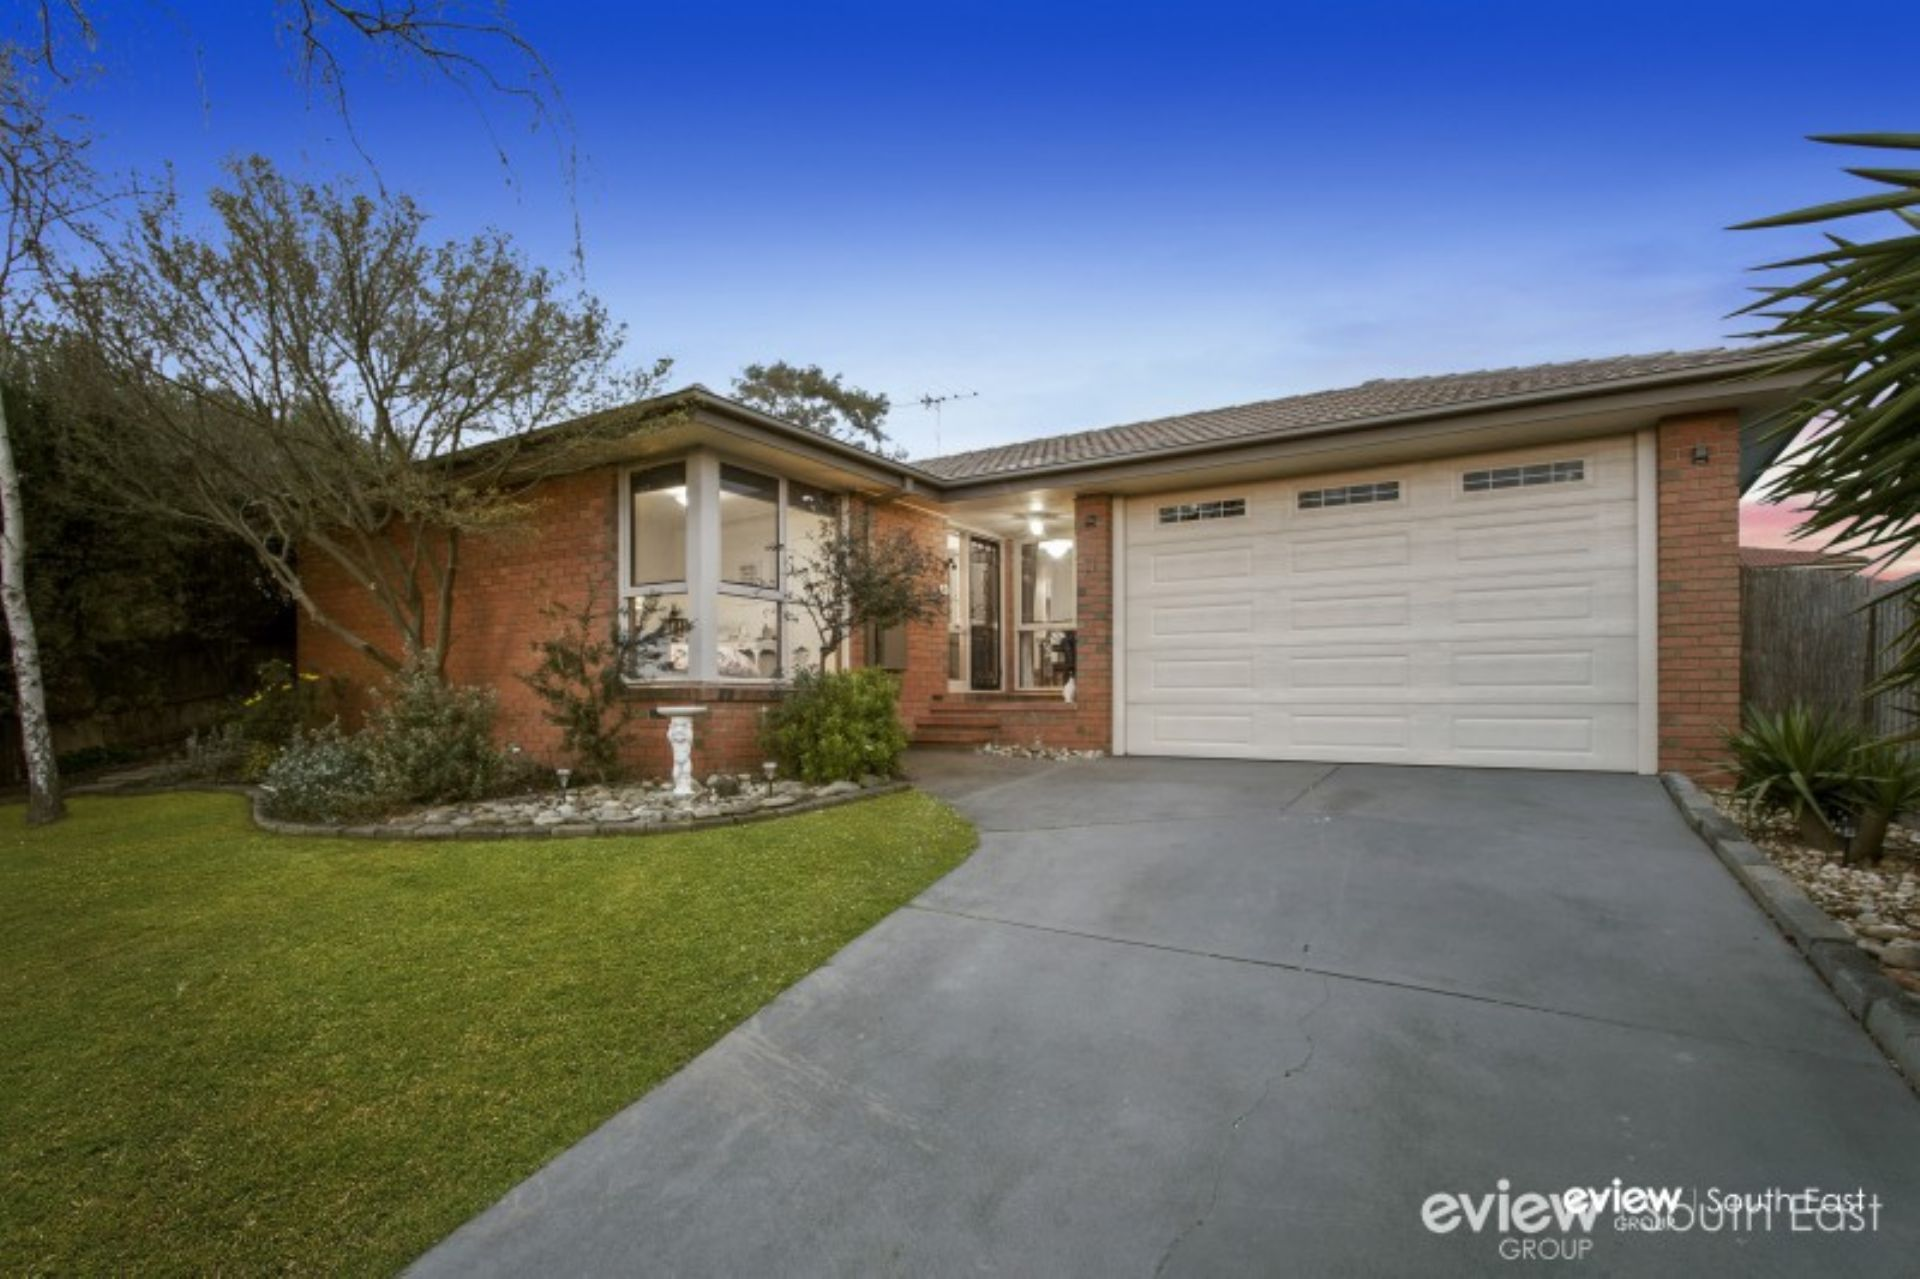 11 Duckworth Close, BERWICK, VIC, 3806 - Image